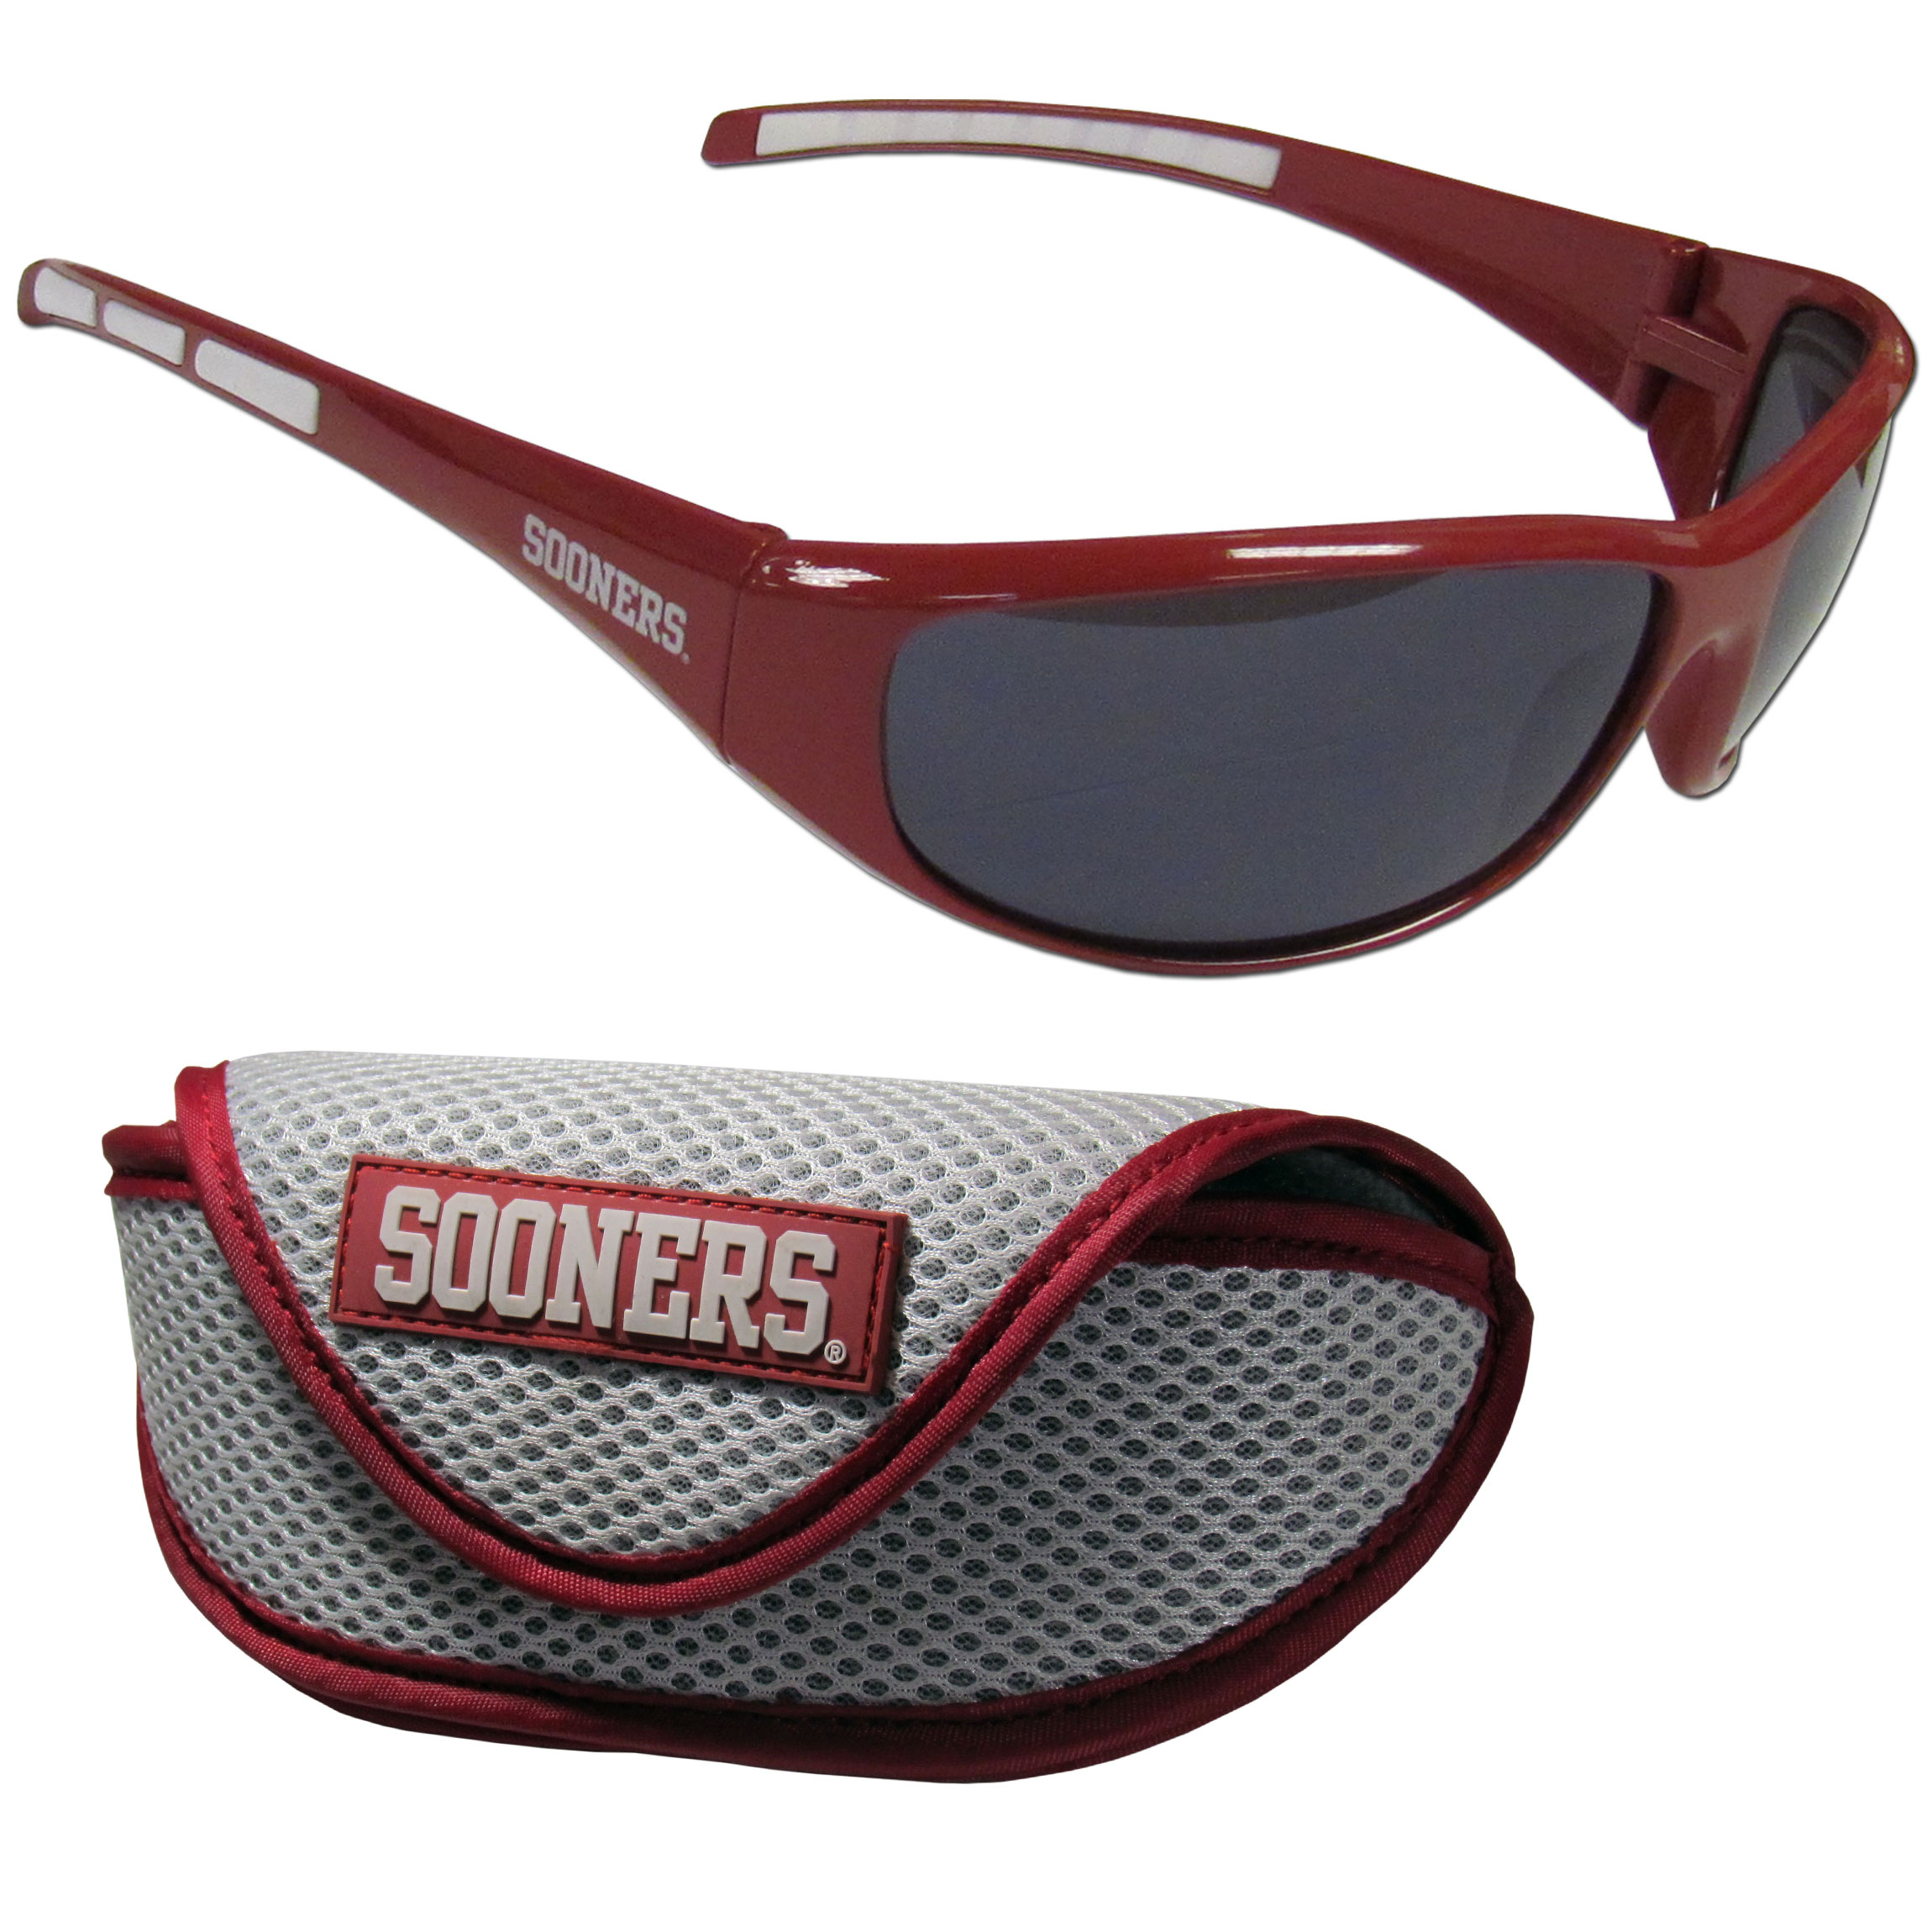 Oklahoma Sooners Wrap Sunglass and Case Set - This great set includes a high quality pair of Oklahoma Sooners wrap sunglasses and soft sport carrying case.